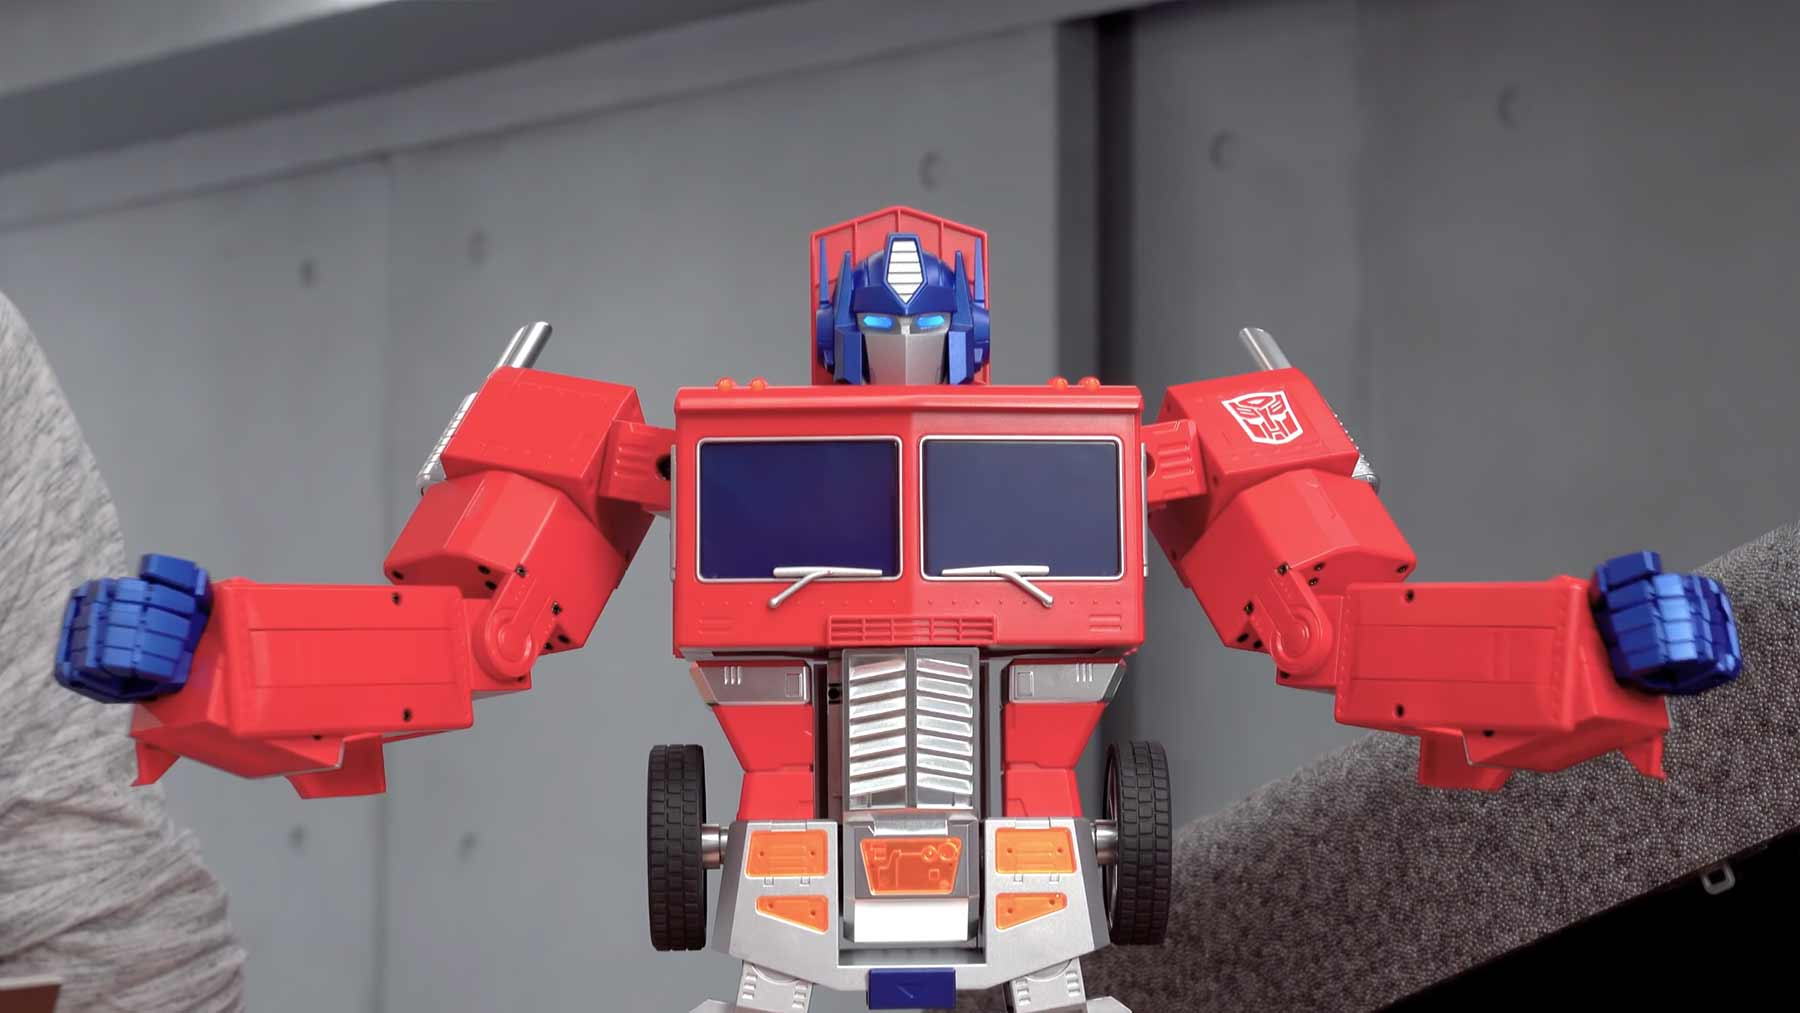 Sich selbst transformierender Optimus-Prime-Roboter transformers-roboter